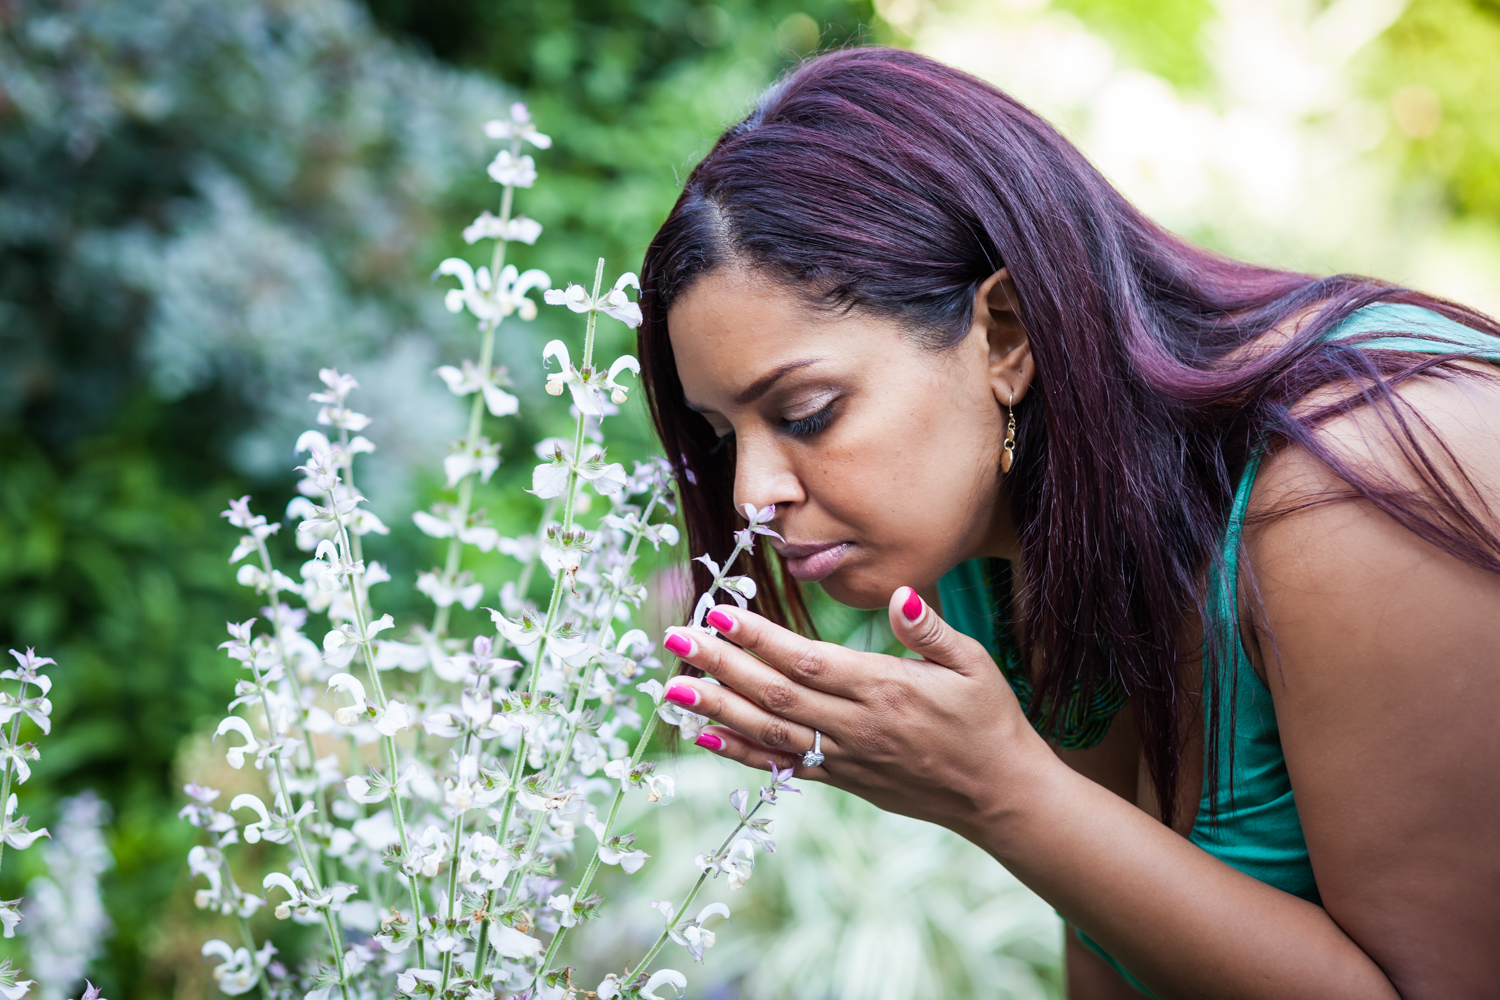 Woman wearing engagement ring leaning down and smelling flower